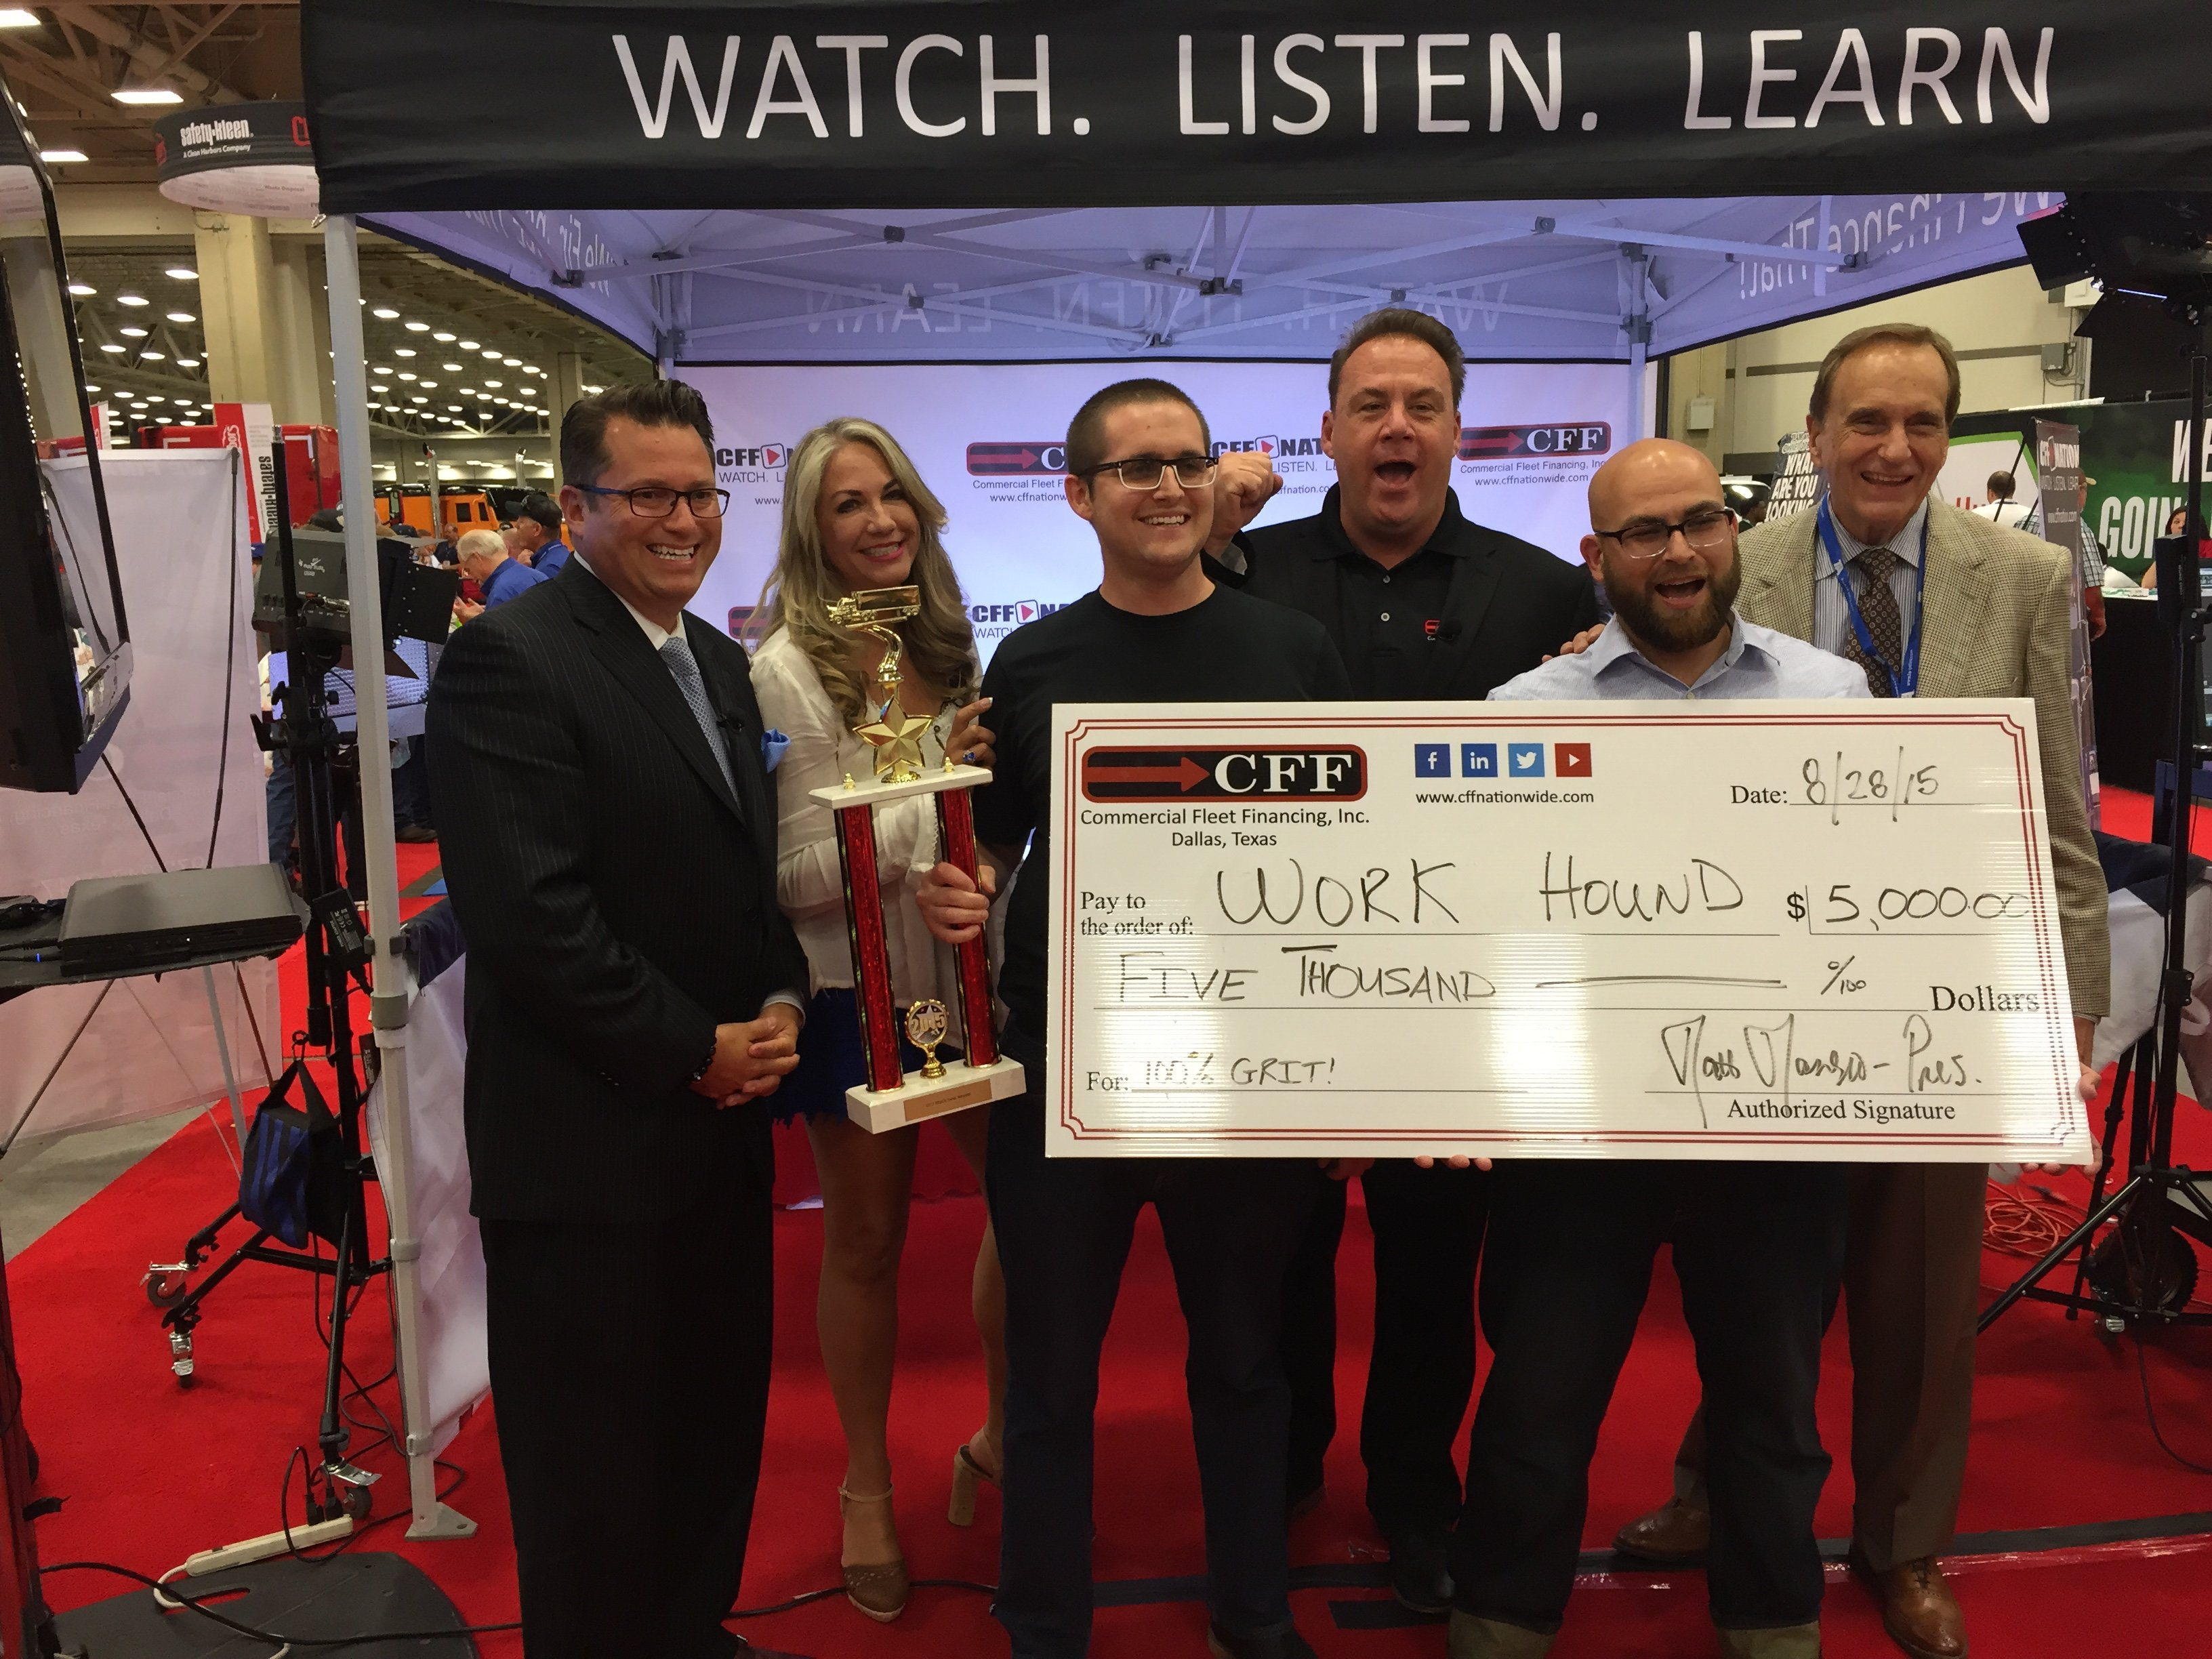 Truck Tank winners Max Farrell and Andrew Kirpalani are shown with Truck Tank judges RJ Grimshaw, CEO of Unifi Equipment Finance; Bethany Williams, writer, speaker and entrepreneur advisor; Matt Manero, founder and CEO of CFF; and Don Daseke, chairman, president and CEO of Daseke.